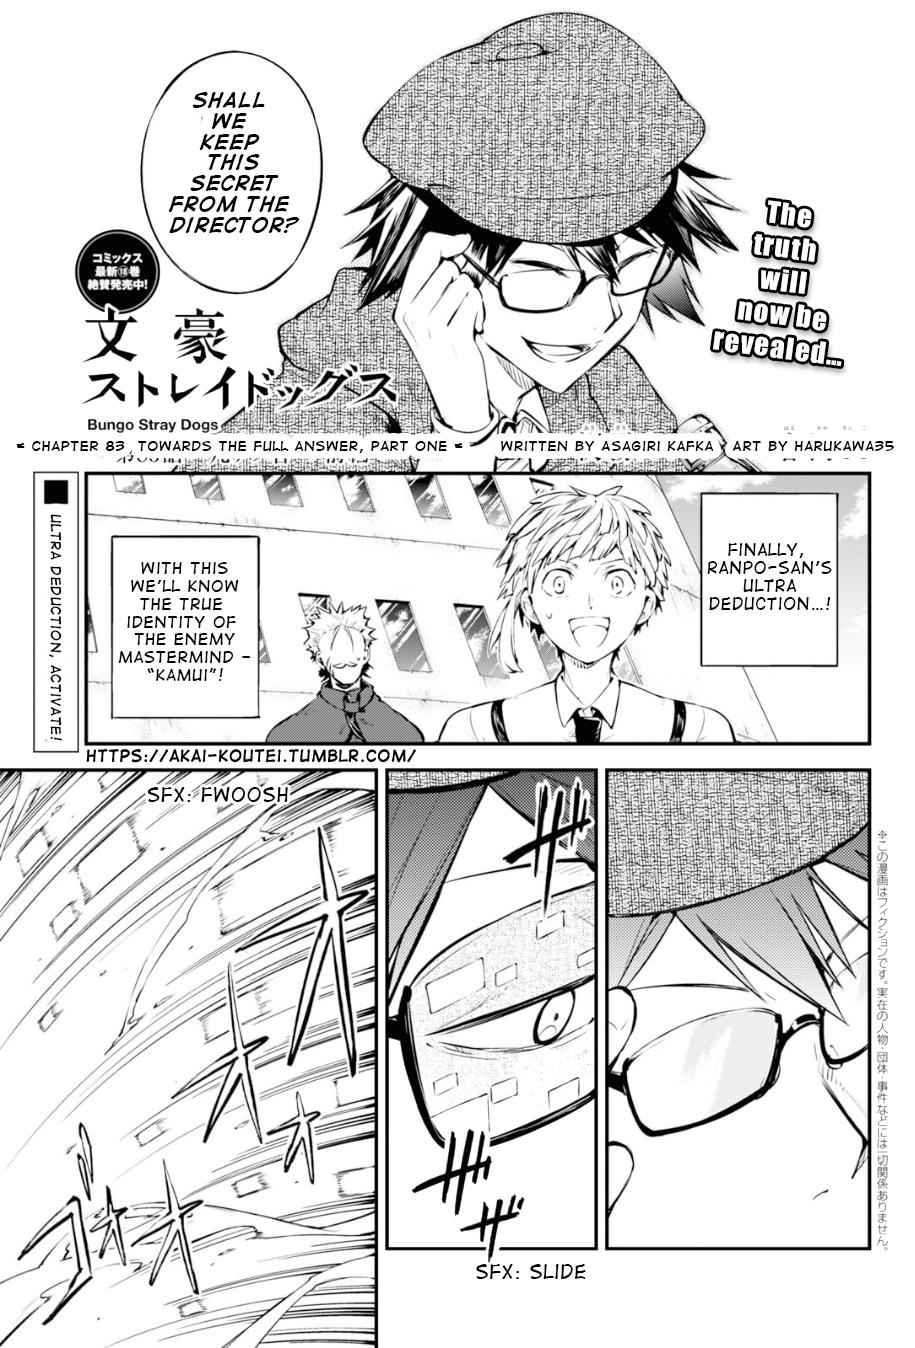 Bungou Stray Dogs Chapter 83 Page 2